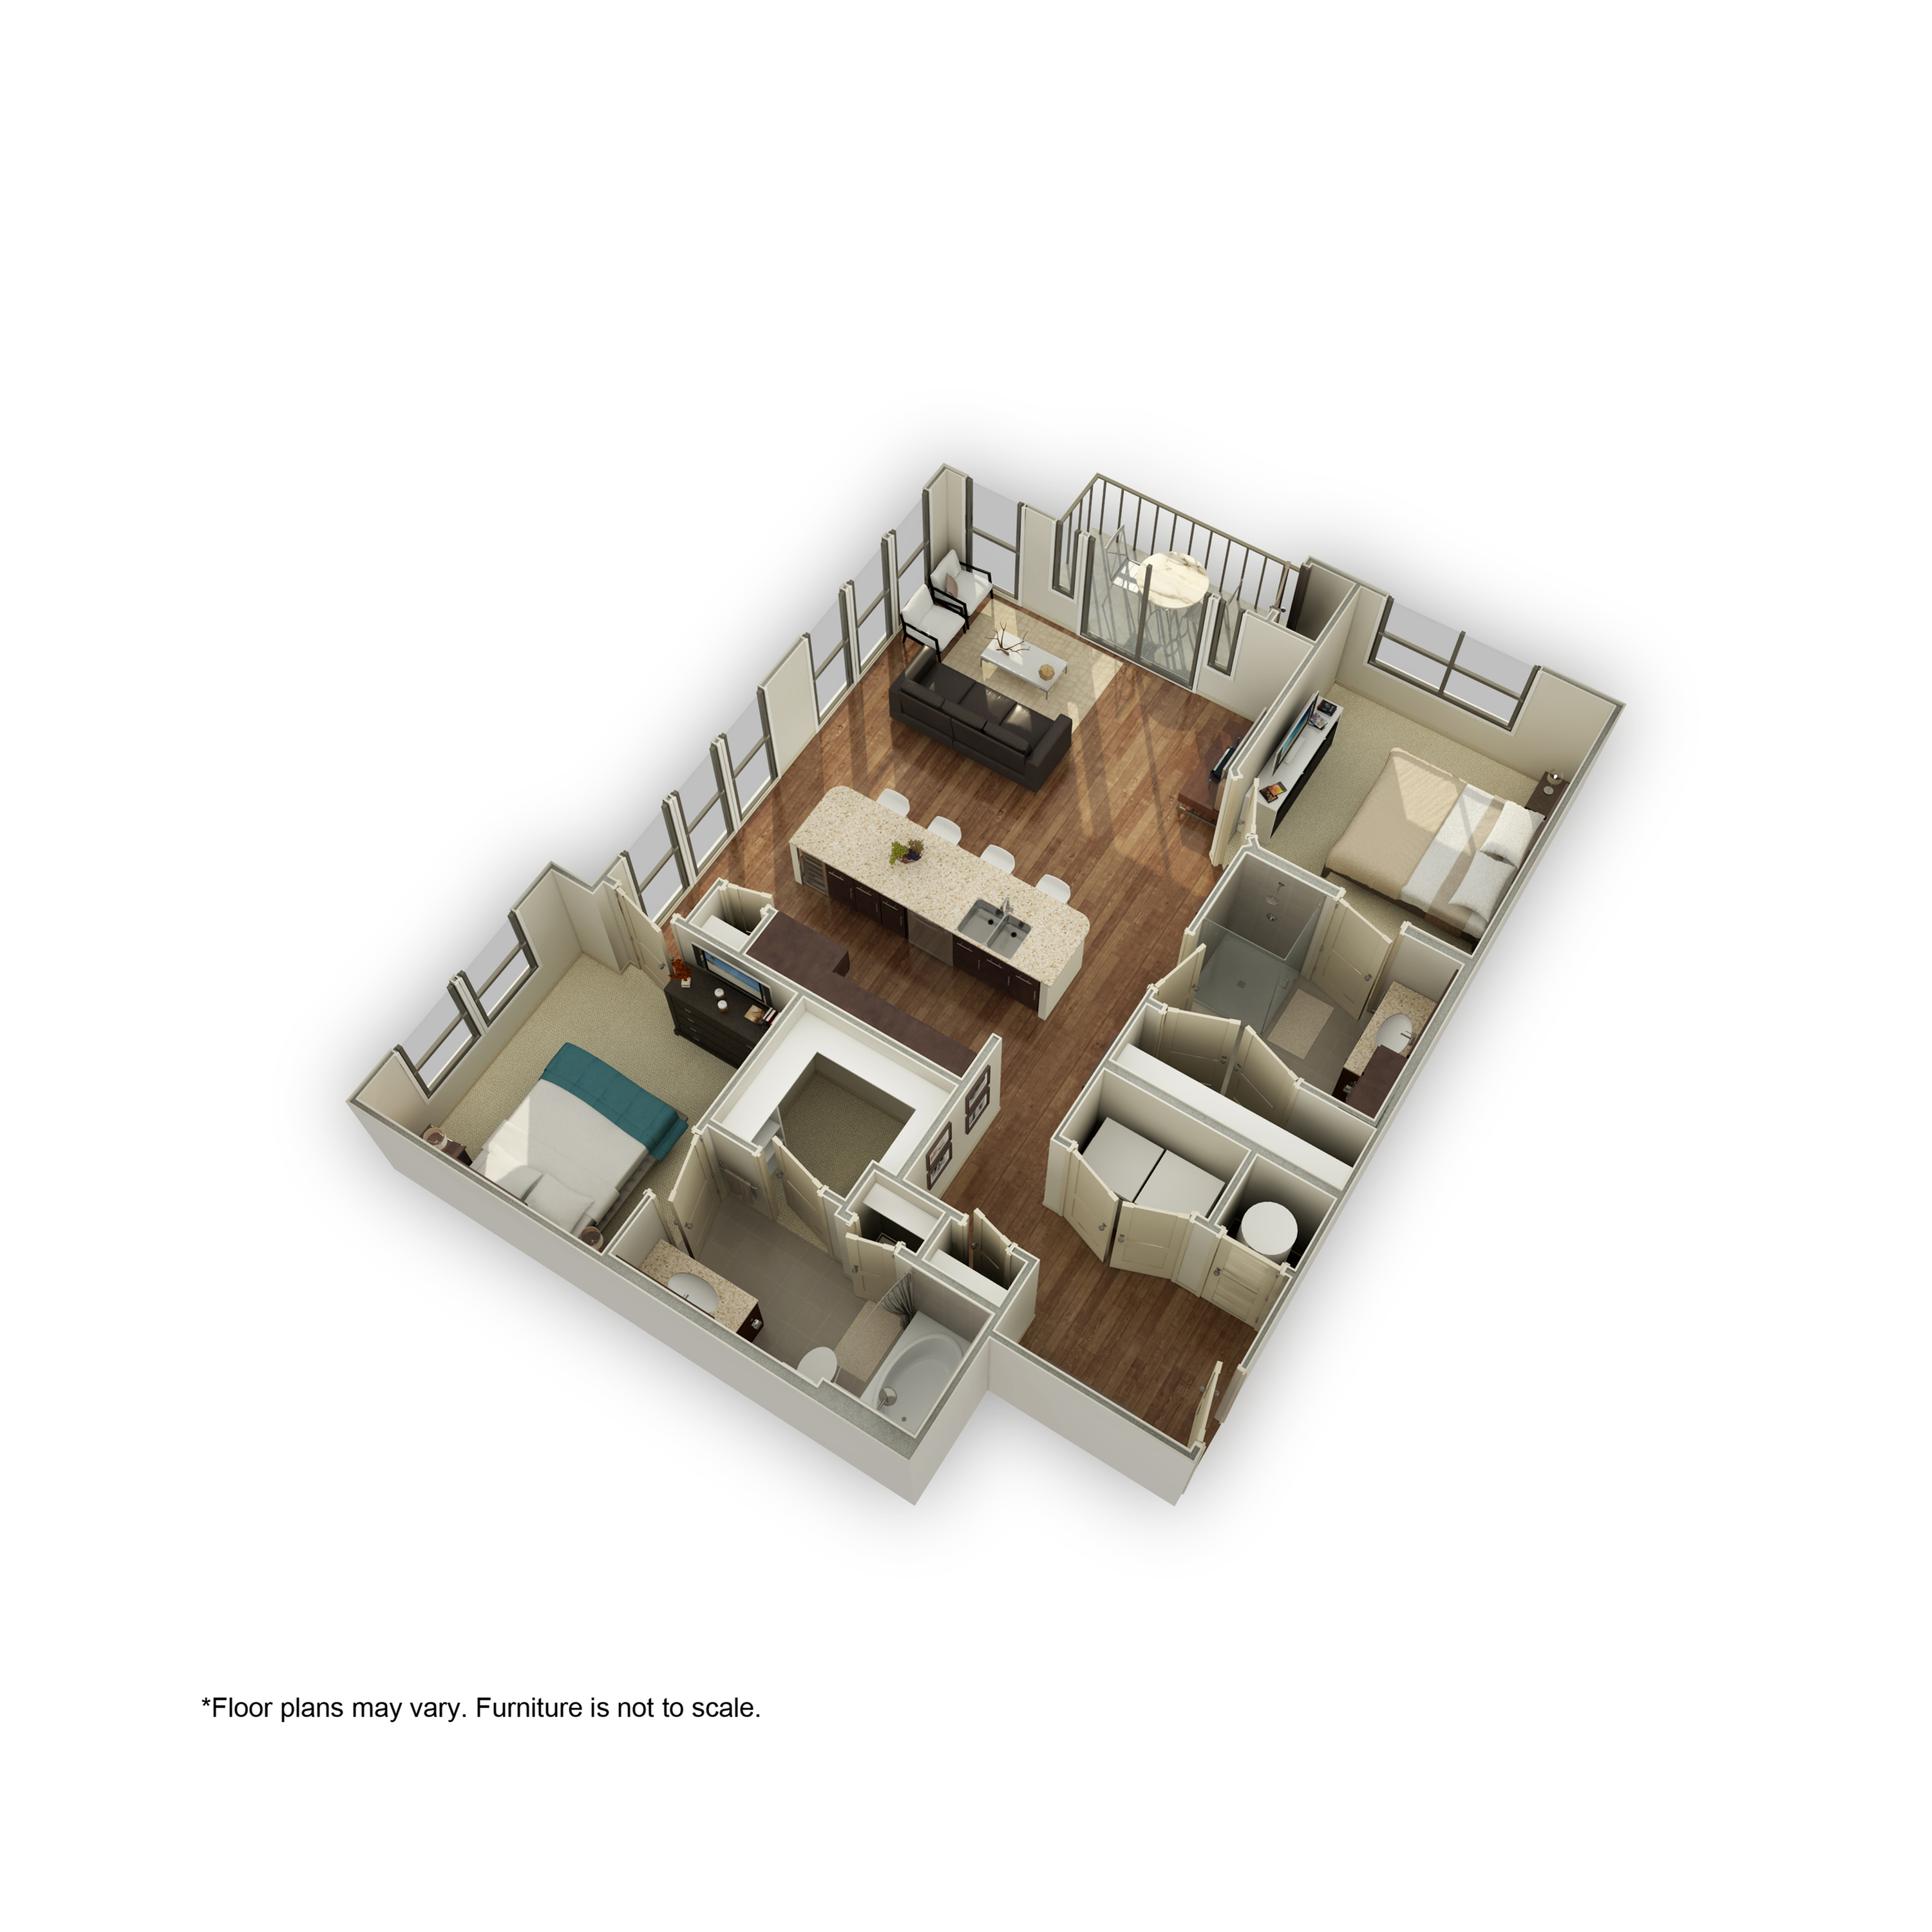 3800-B2A 3D Floor Plan | 2 Bedroom with 2 Bath | 1168 Square Feet | 3800 Main | Apartment Homes